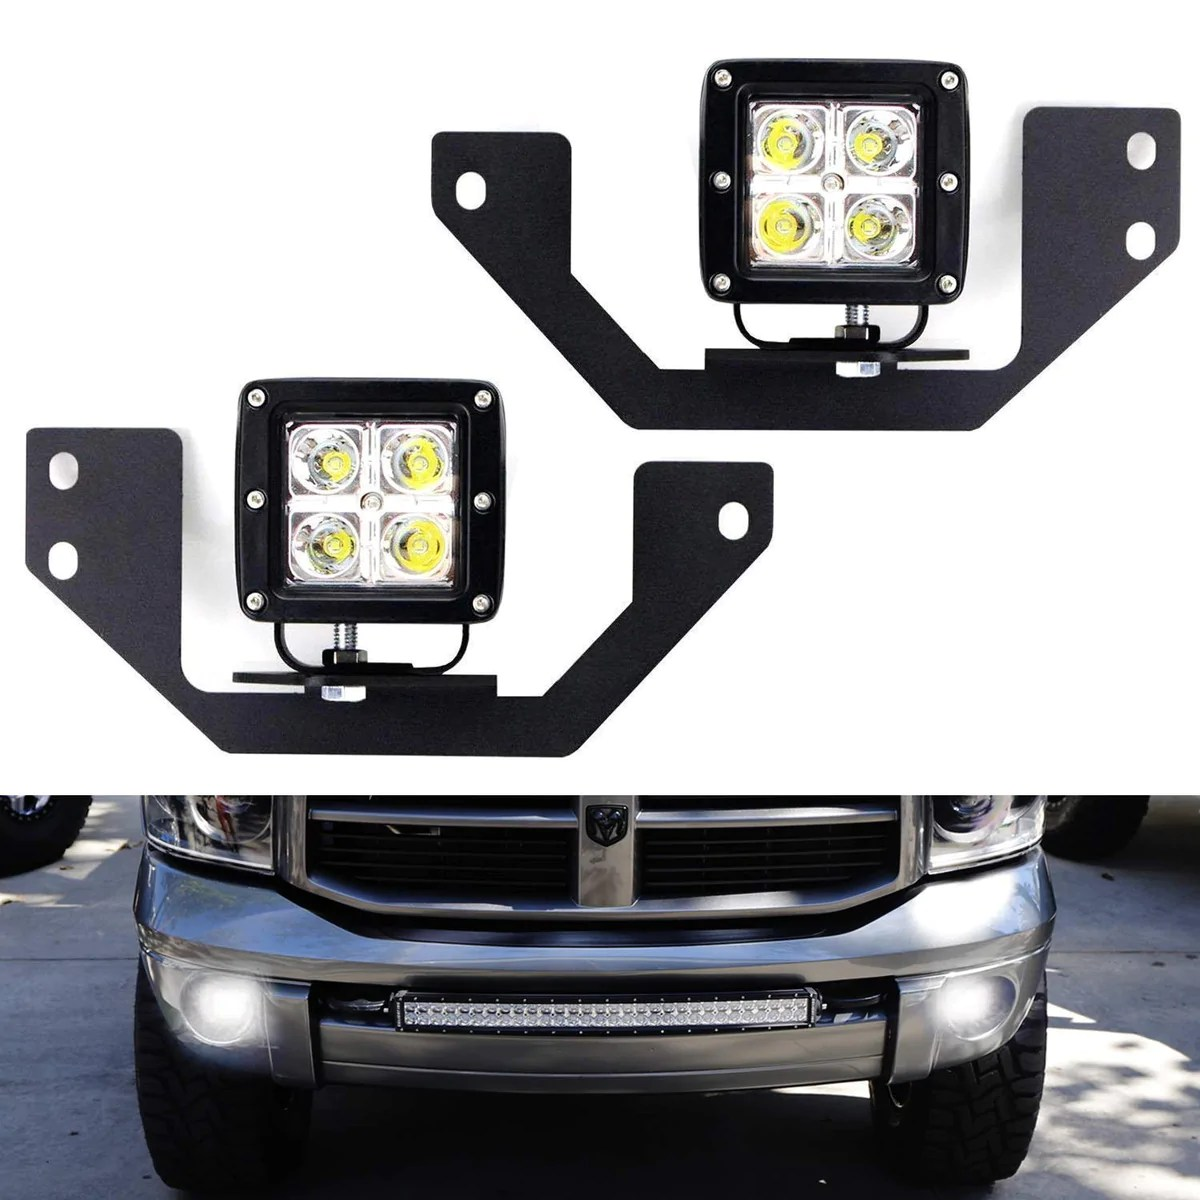 dodge ram 1500 2500 3500 durango led pod light fog lamp kit ijdmtoy com [ 1200 x 1200 Pixel ]